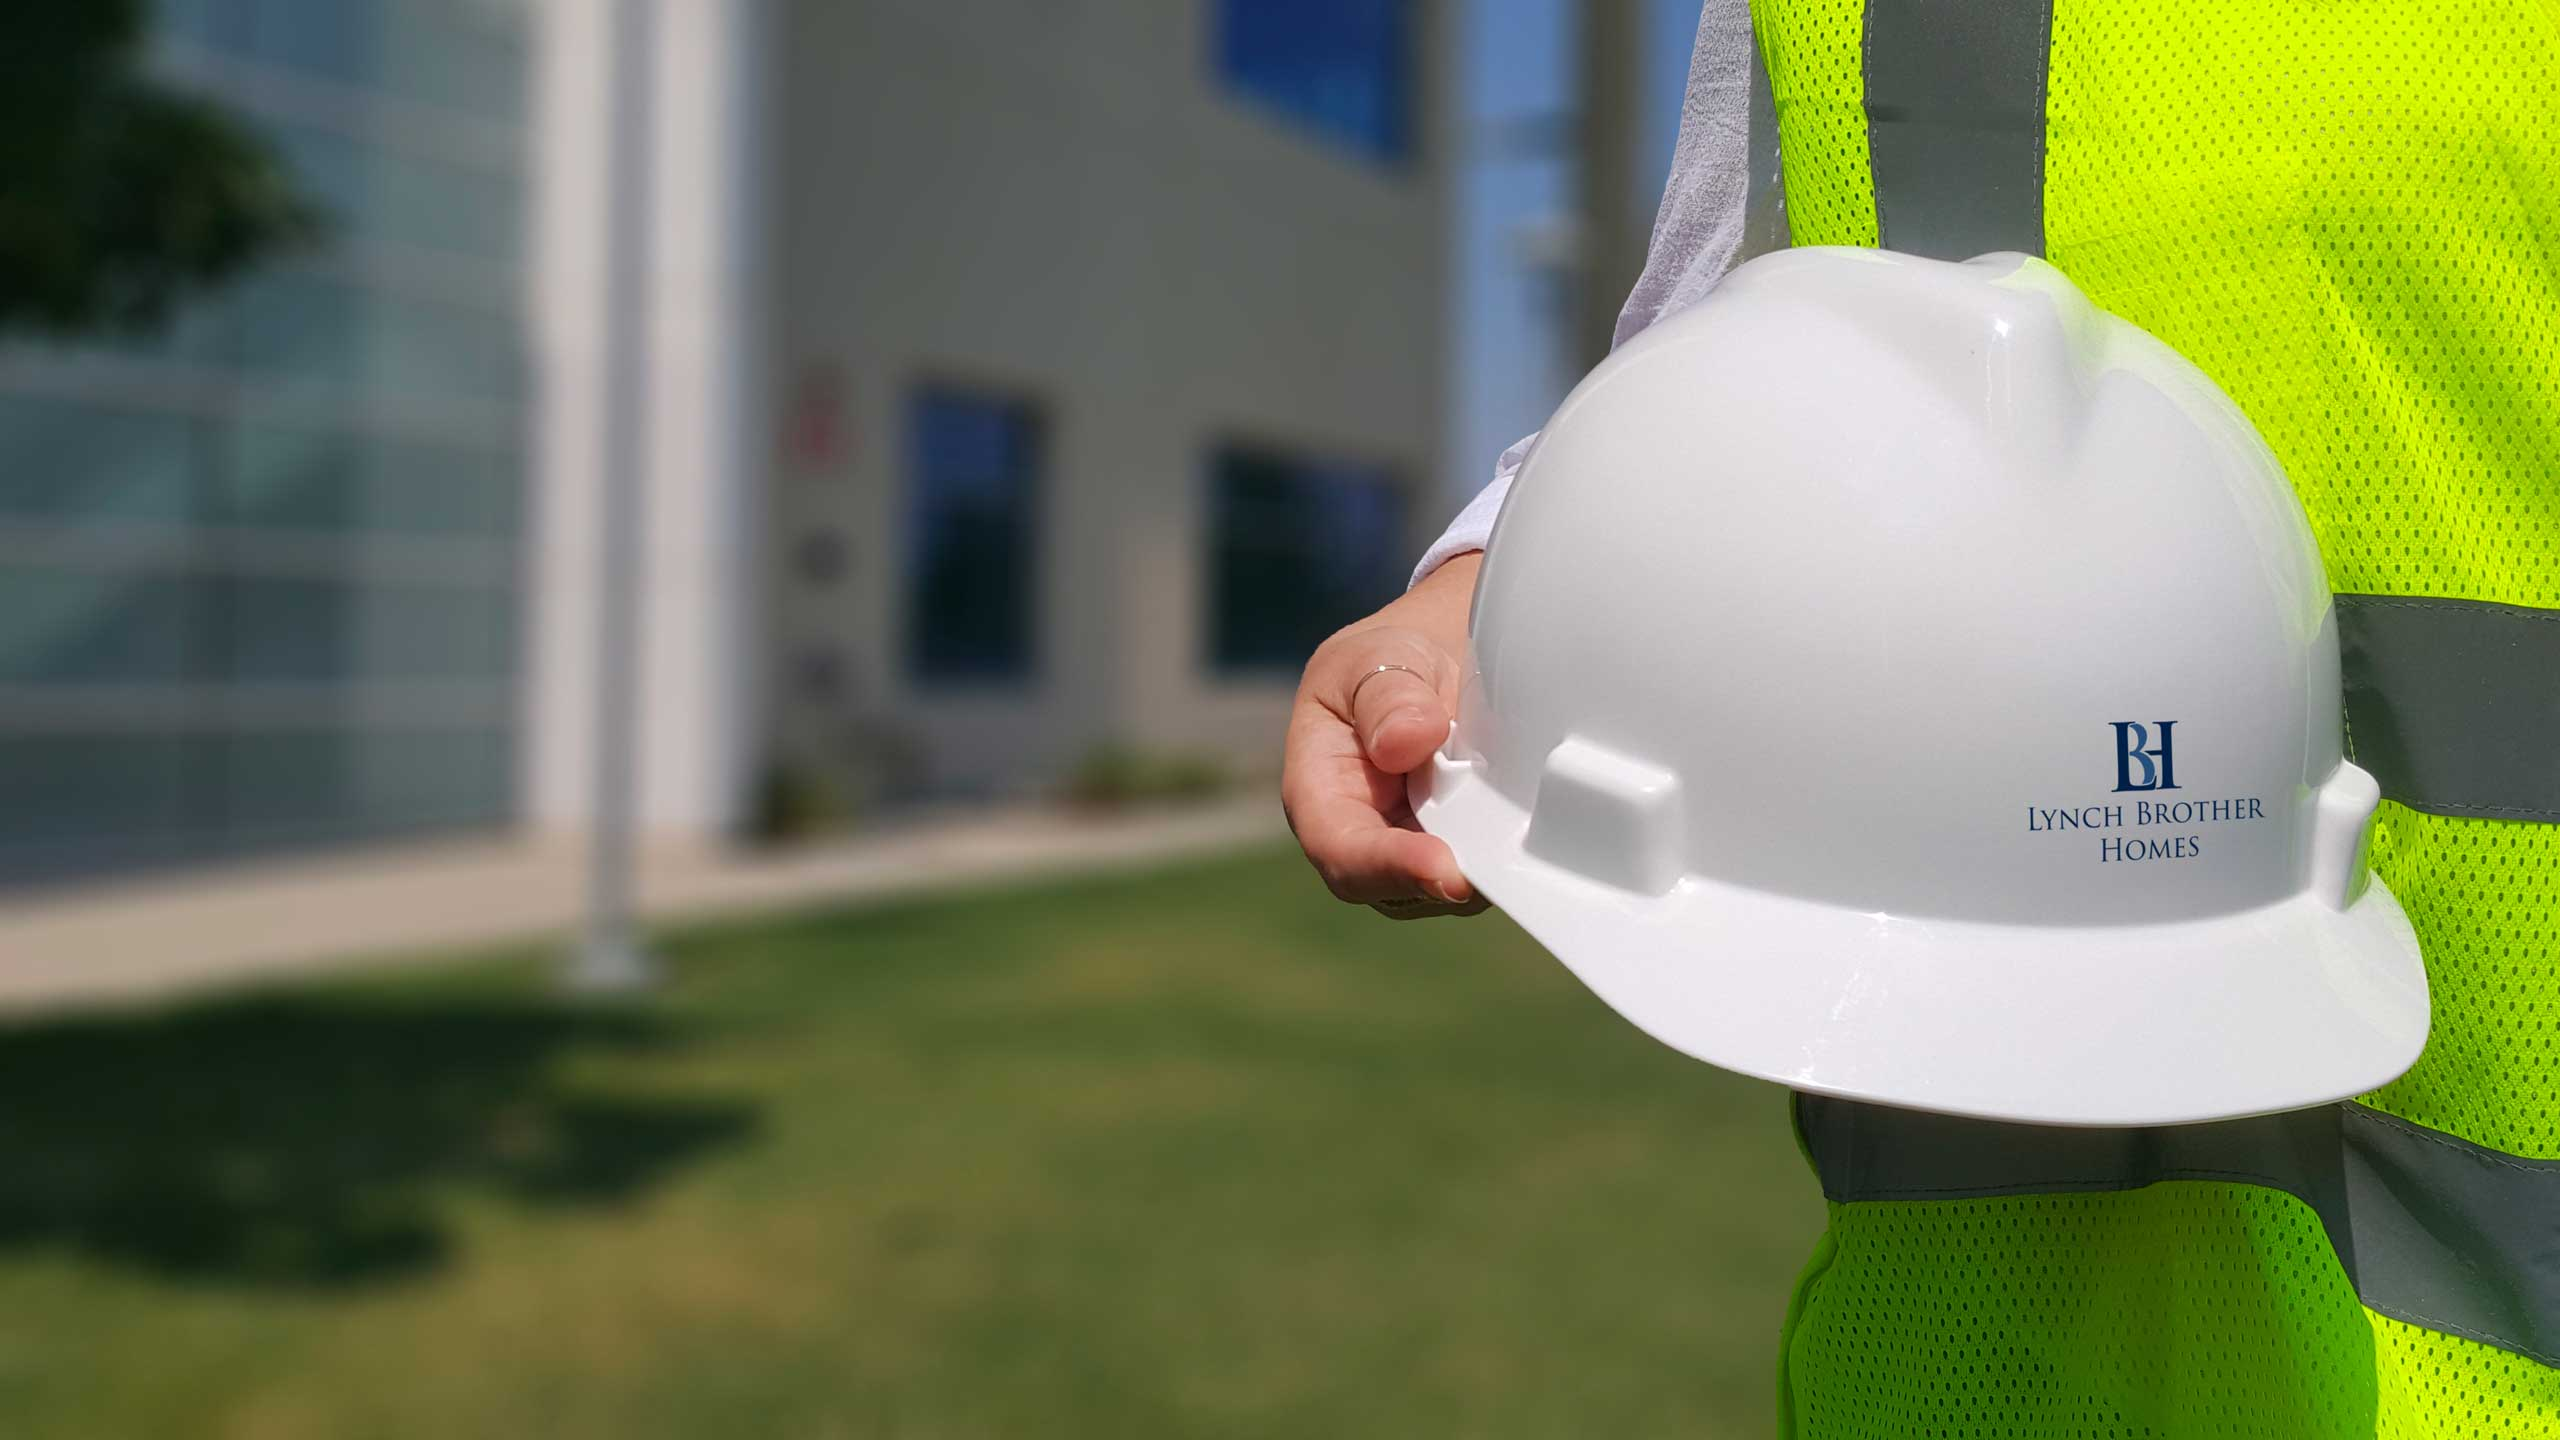 hardhat with Lynch Brother logo being held